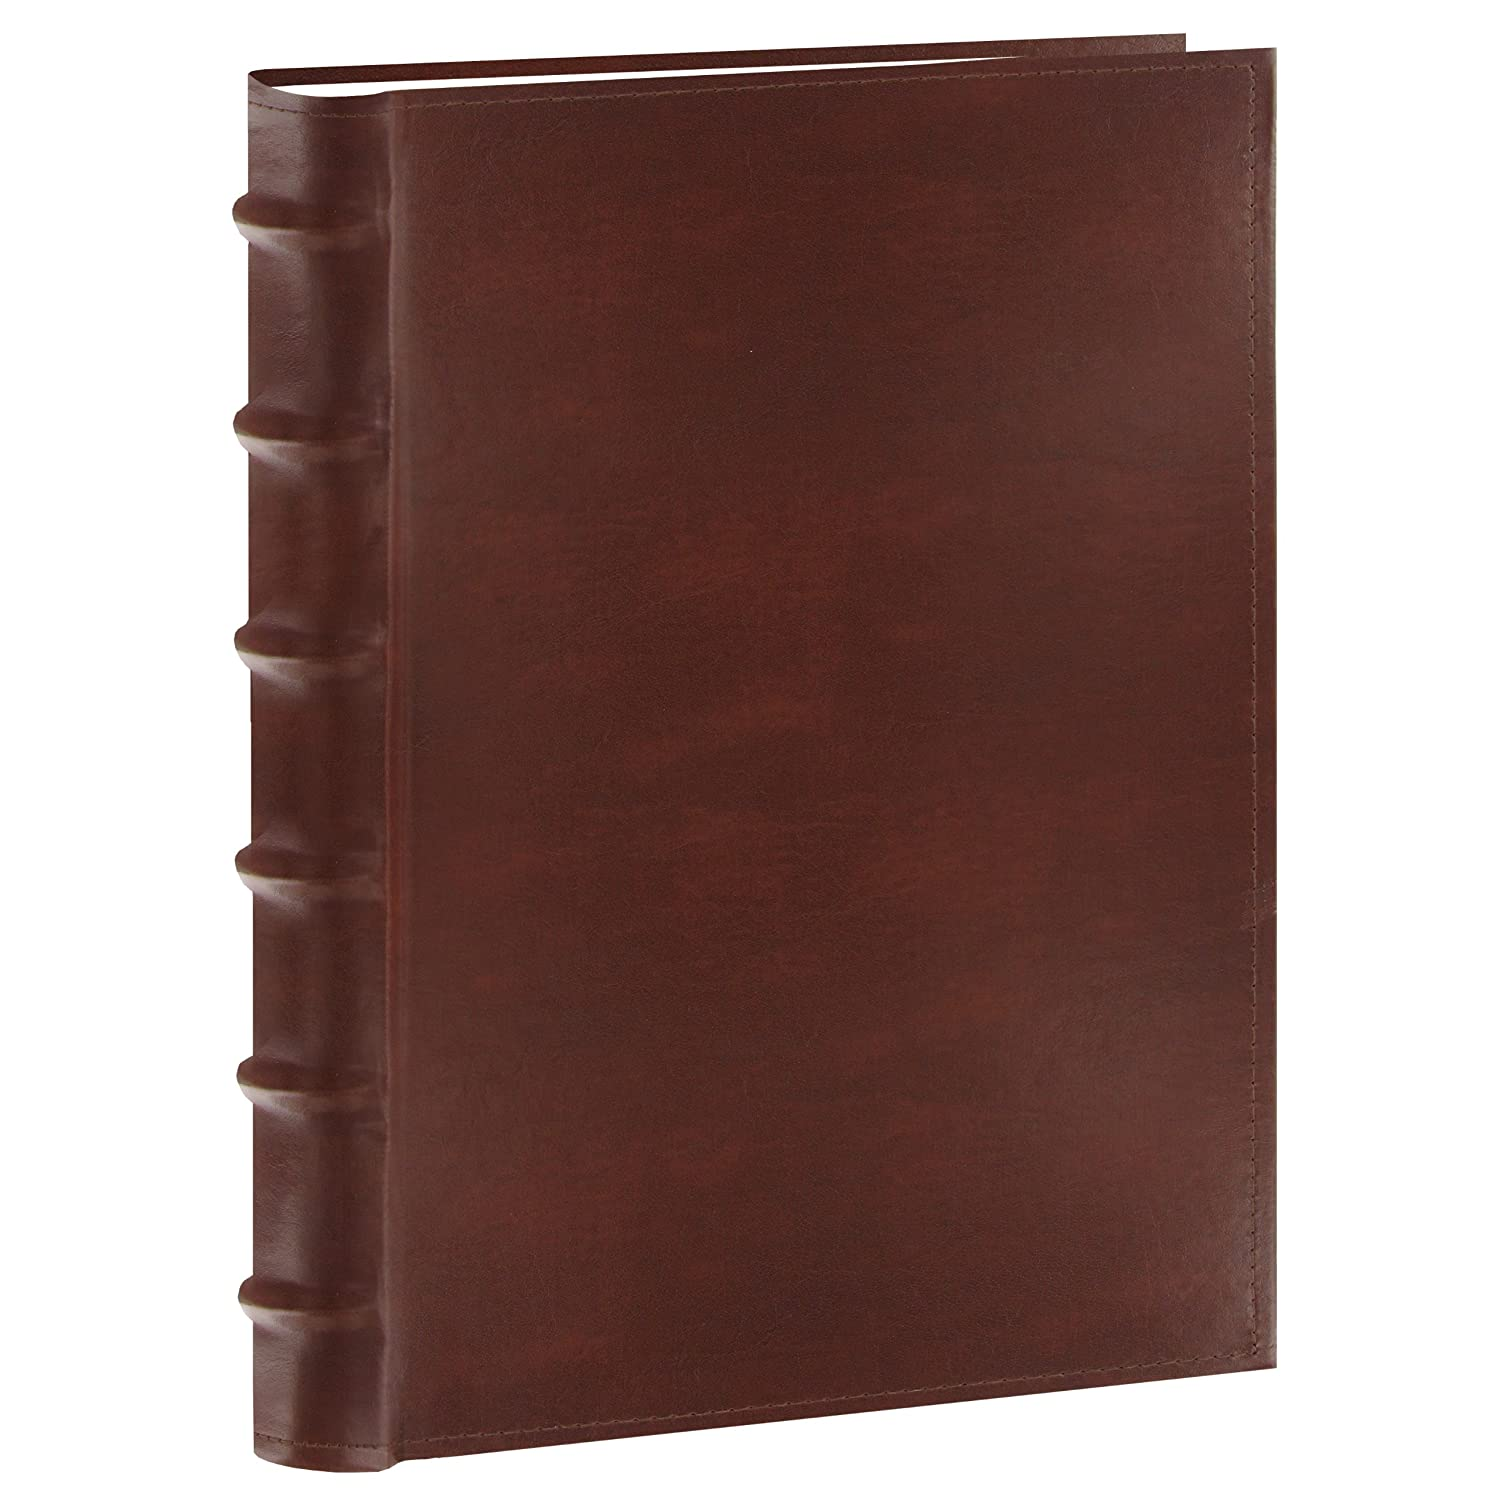 Pioneer Photo Albums 200-Pocket European Bonded Leather Photo Album for 5 by 7-Inch Prints, Burgundy CLB-257/BG